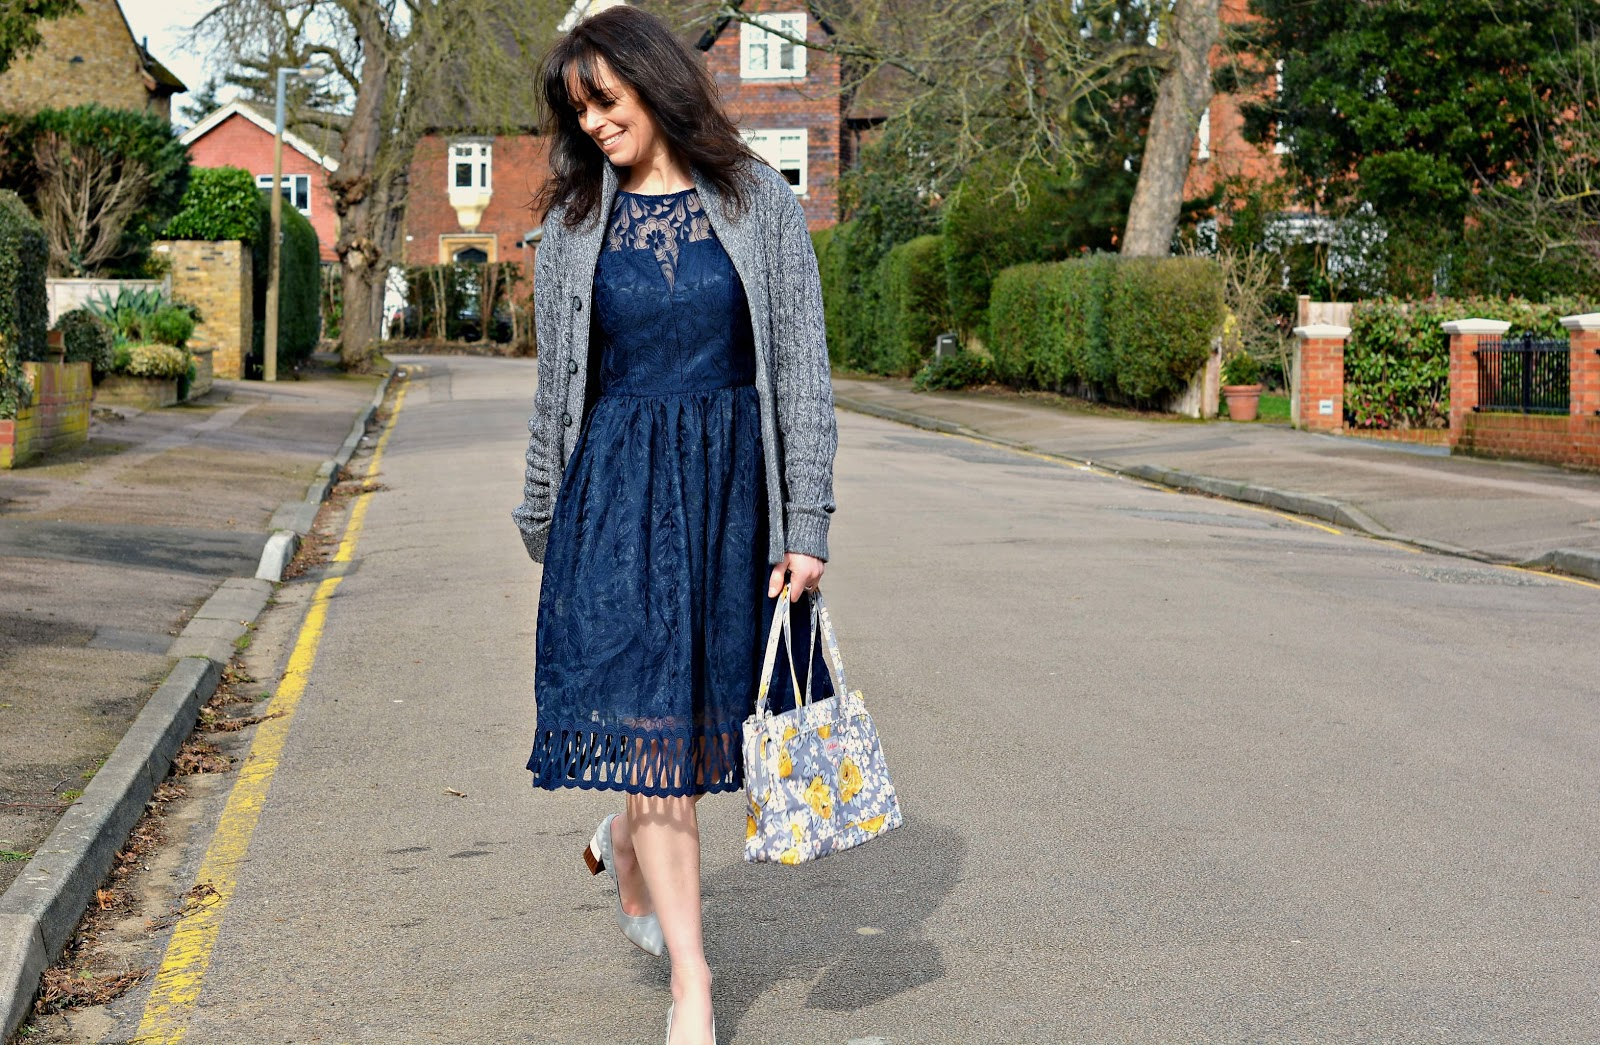 Aspire style dress and Cath Kidston bag